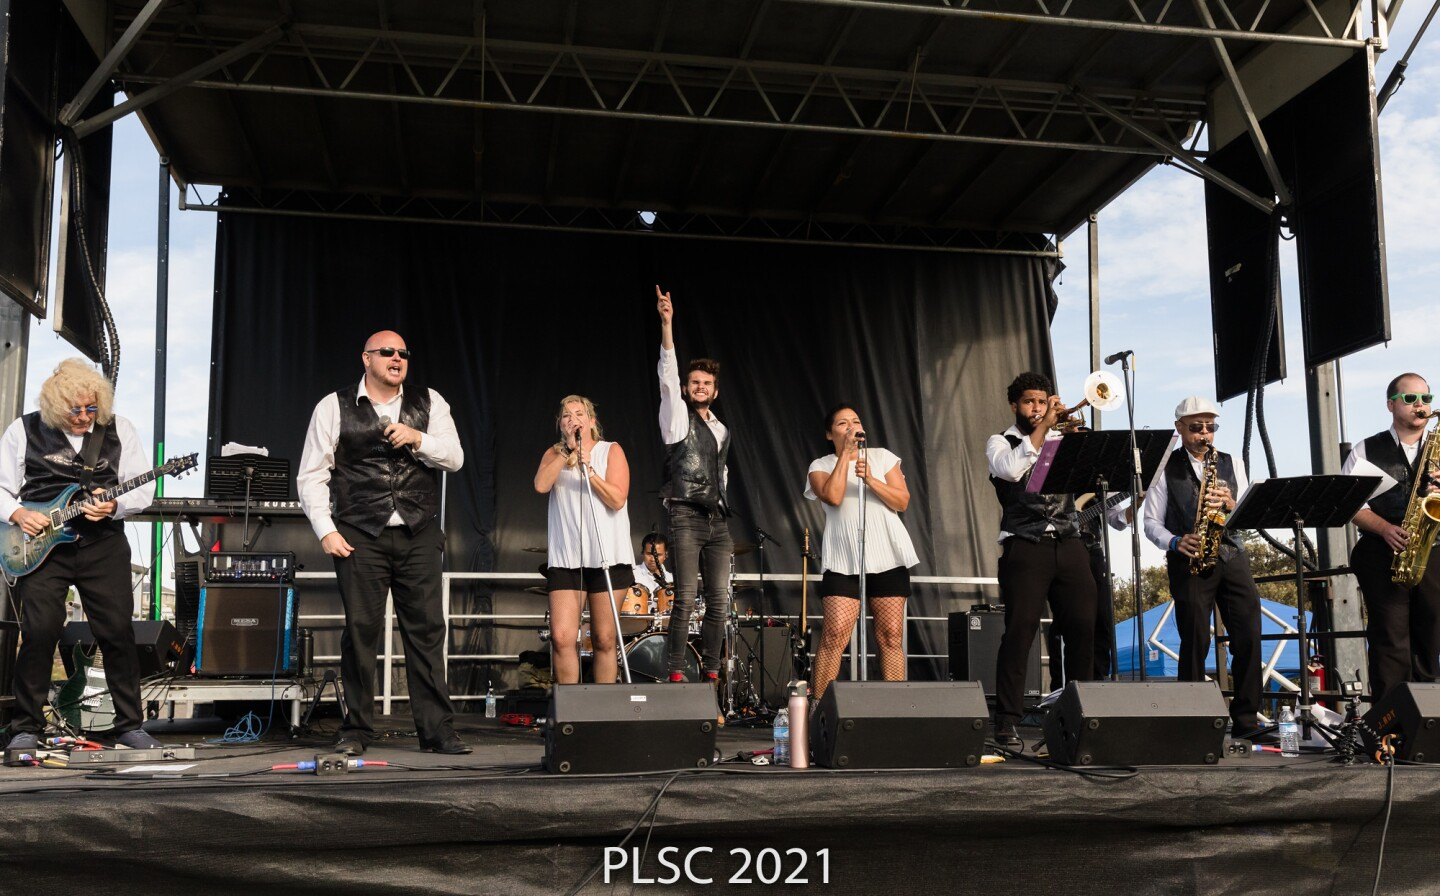 Funk band Full Strength gets rolling onstage at Point Loma Park on Oct. 2 in a show presented by Point Loma Summer Concerts.